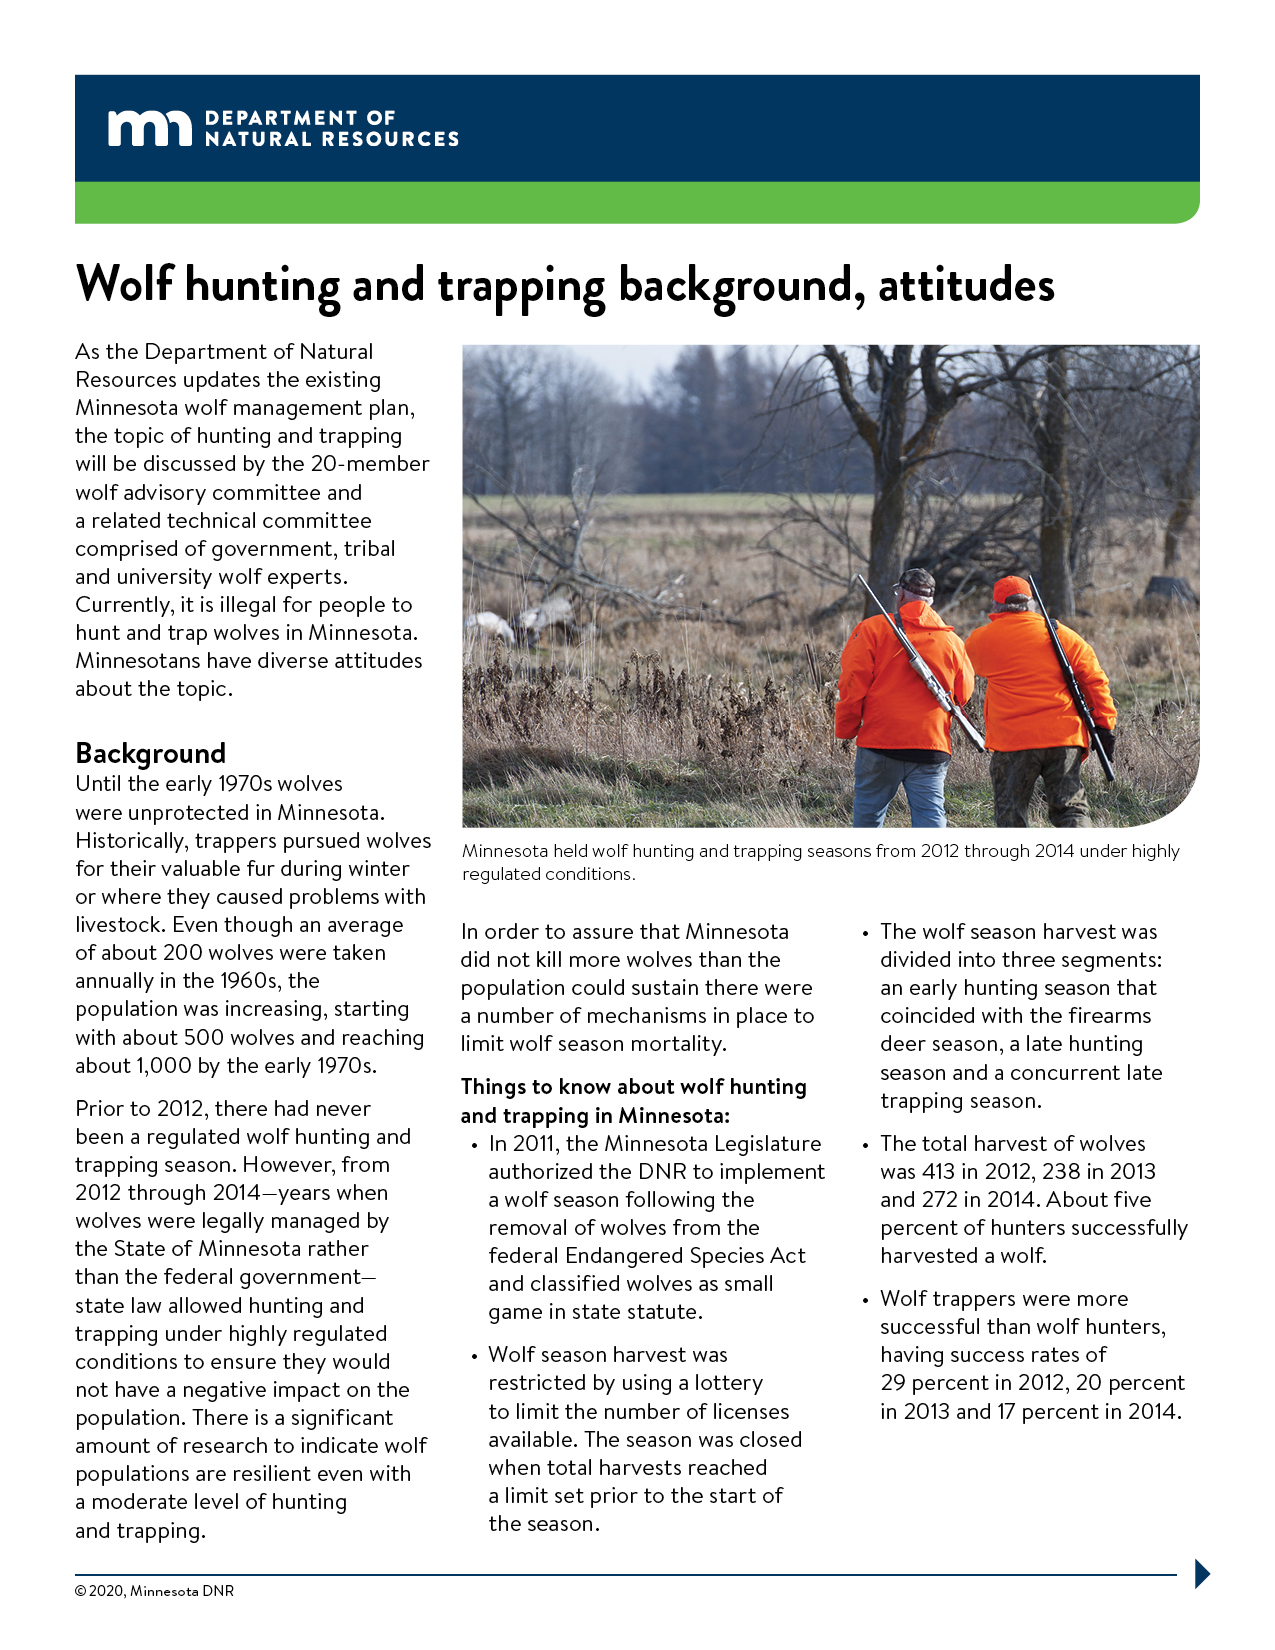 Image of a the wolf hunting fact sheet